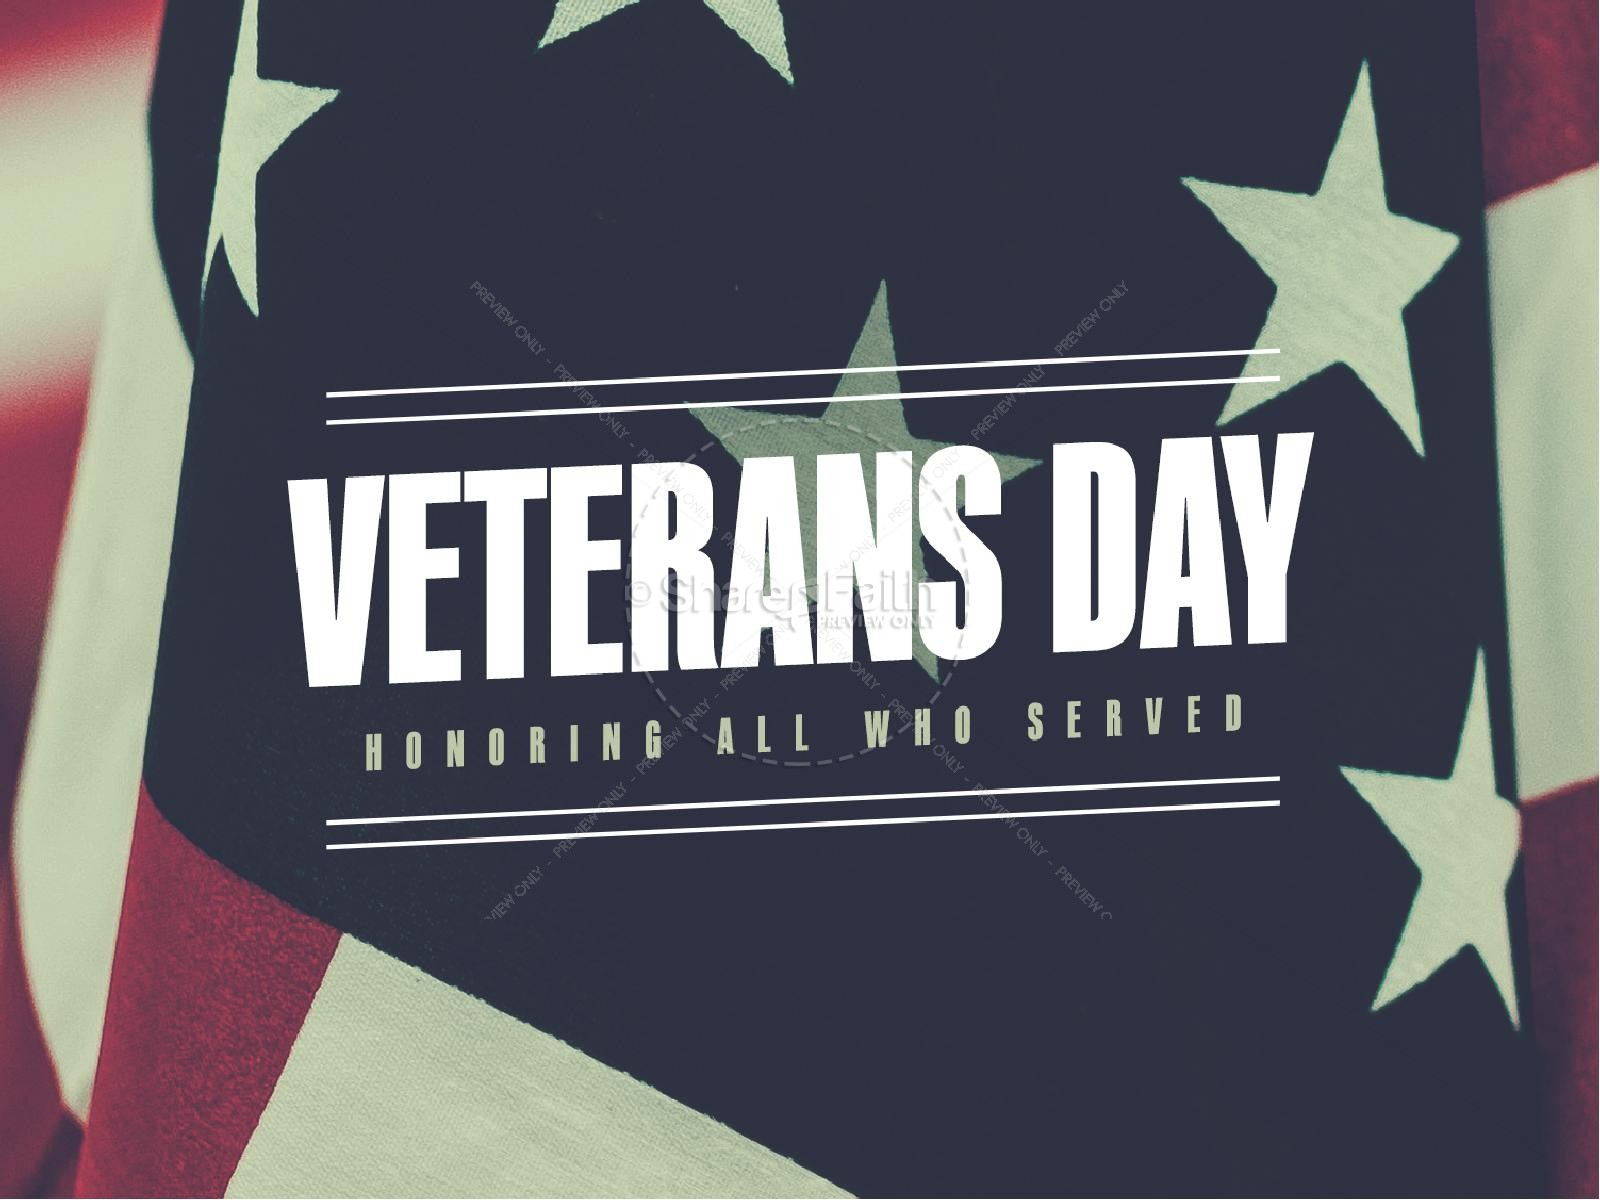 Veterans Day Honor Church Powerpoint